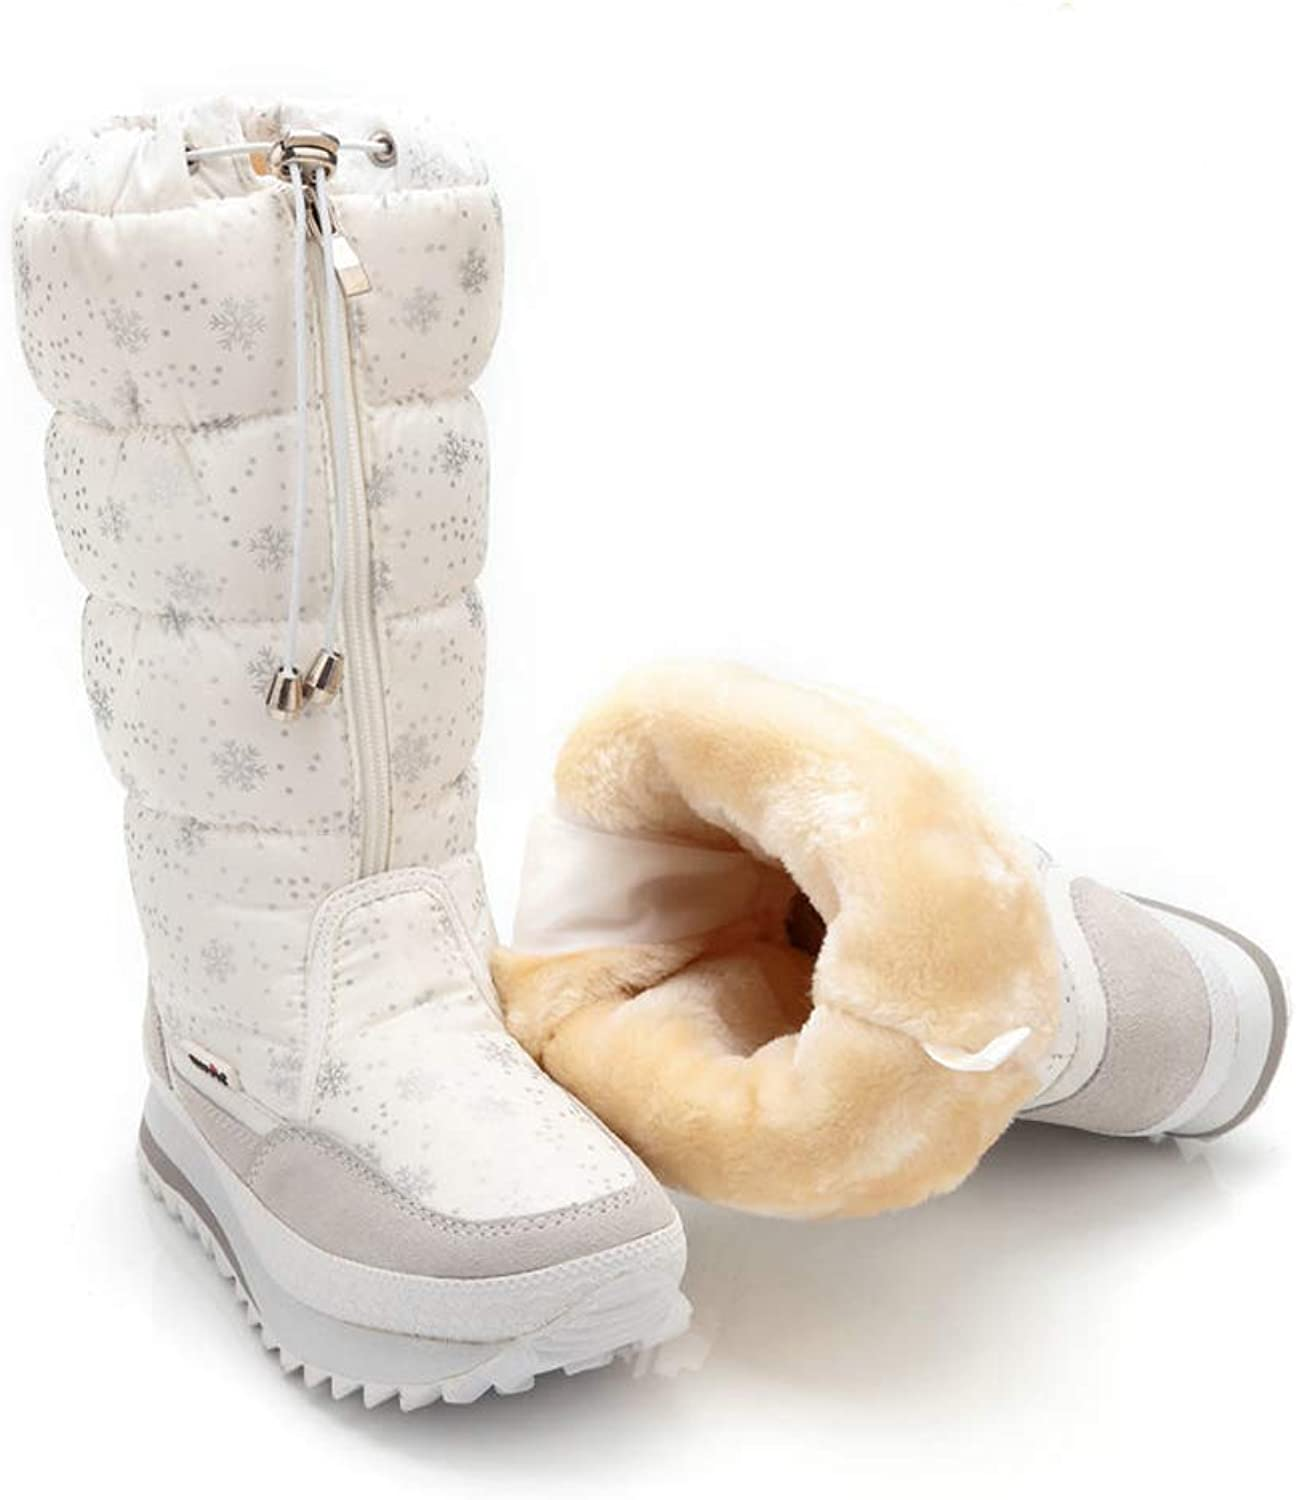 f80b337a8dae4 Women's Boots,White-39EU Snow Warm Lined Fur Soles Thick Boots ...